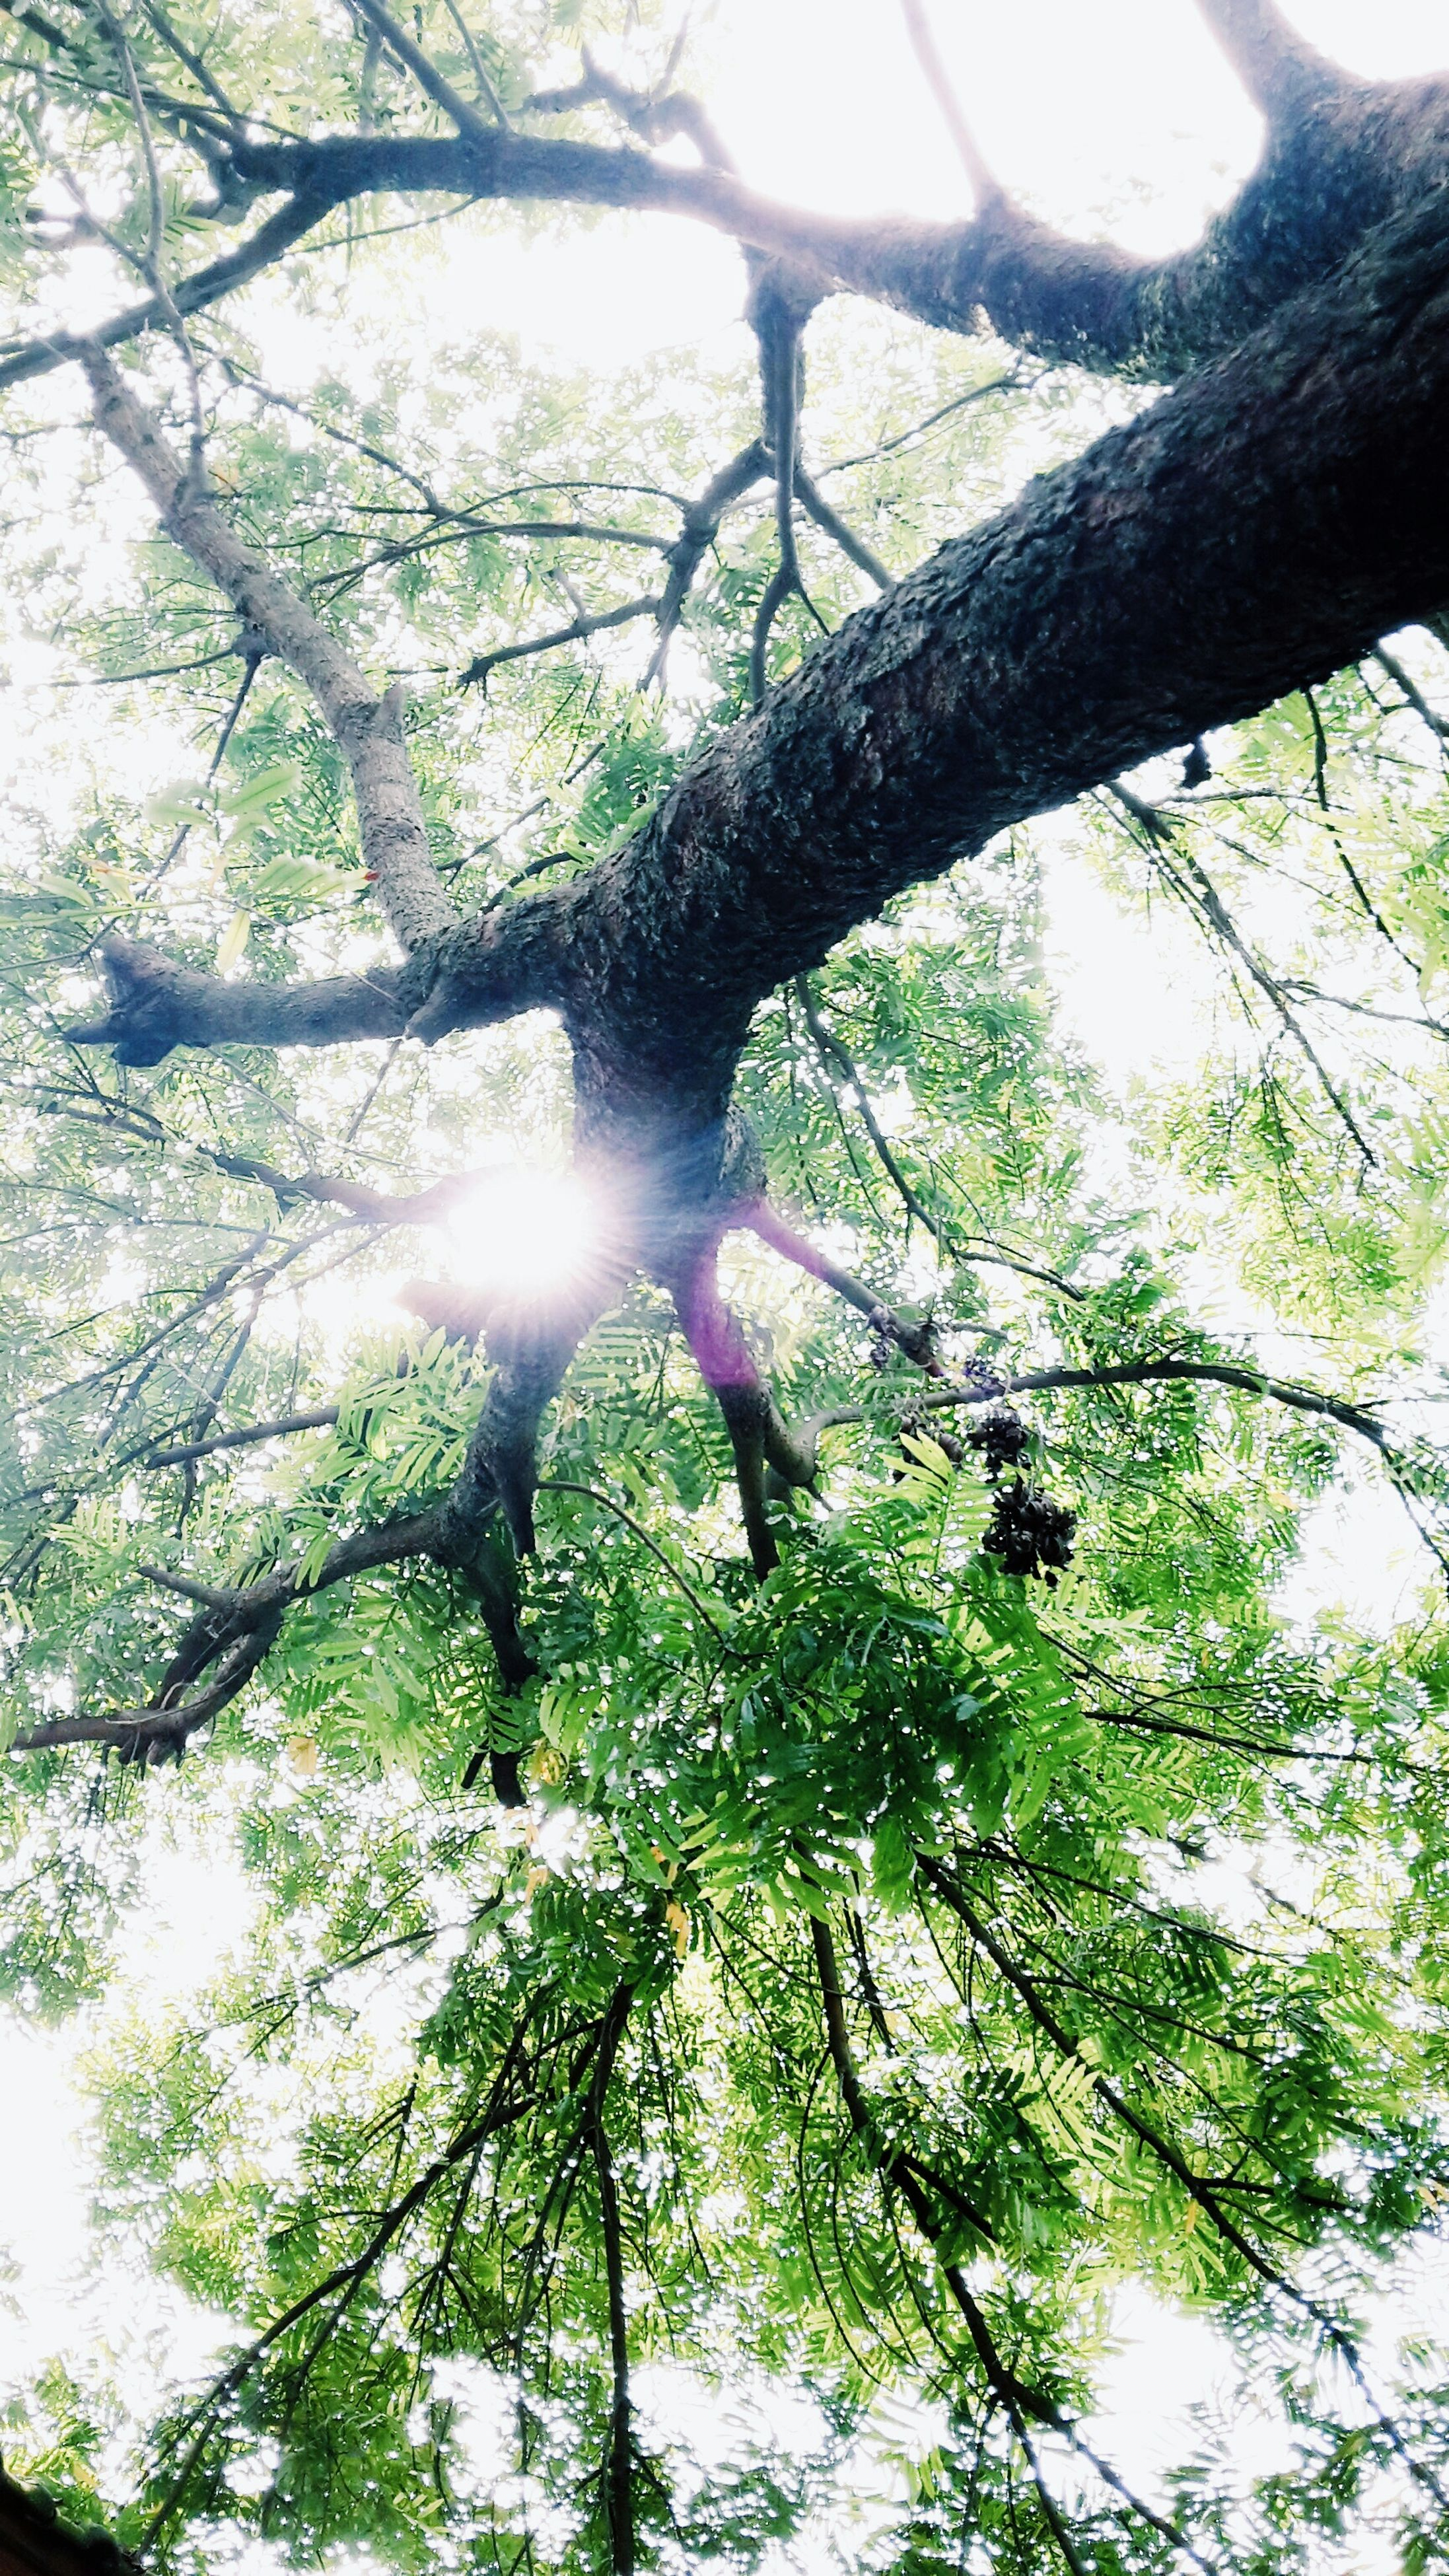 tree, low angle view, branch, growth, sunbeam, nature, sunlight, sun, beauty in nature, tranquility, lens flare, forest, green color, tree trunk, day, sky, scenics, outdoors, tranquil scene, no people